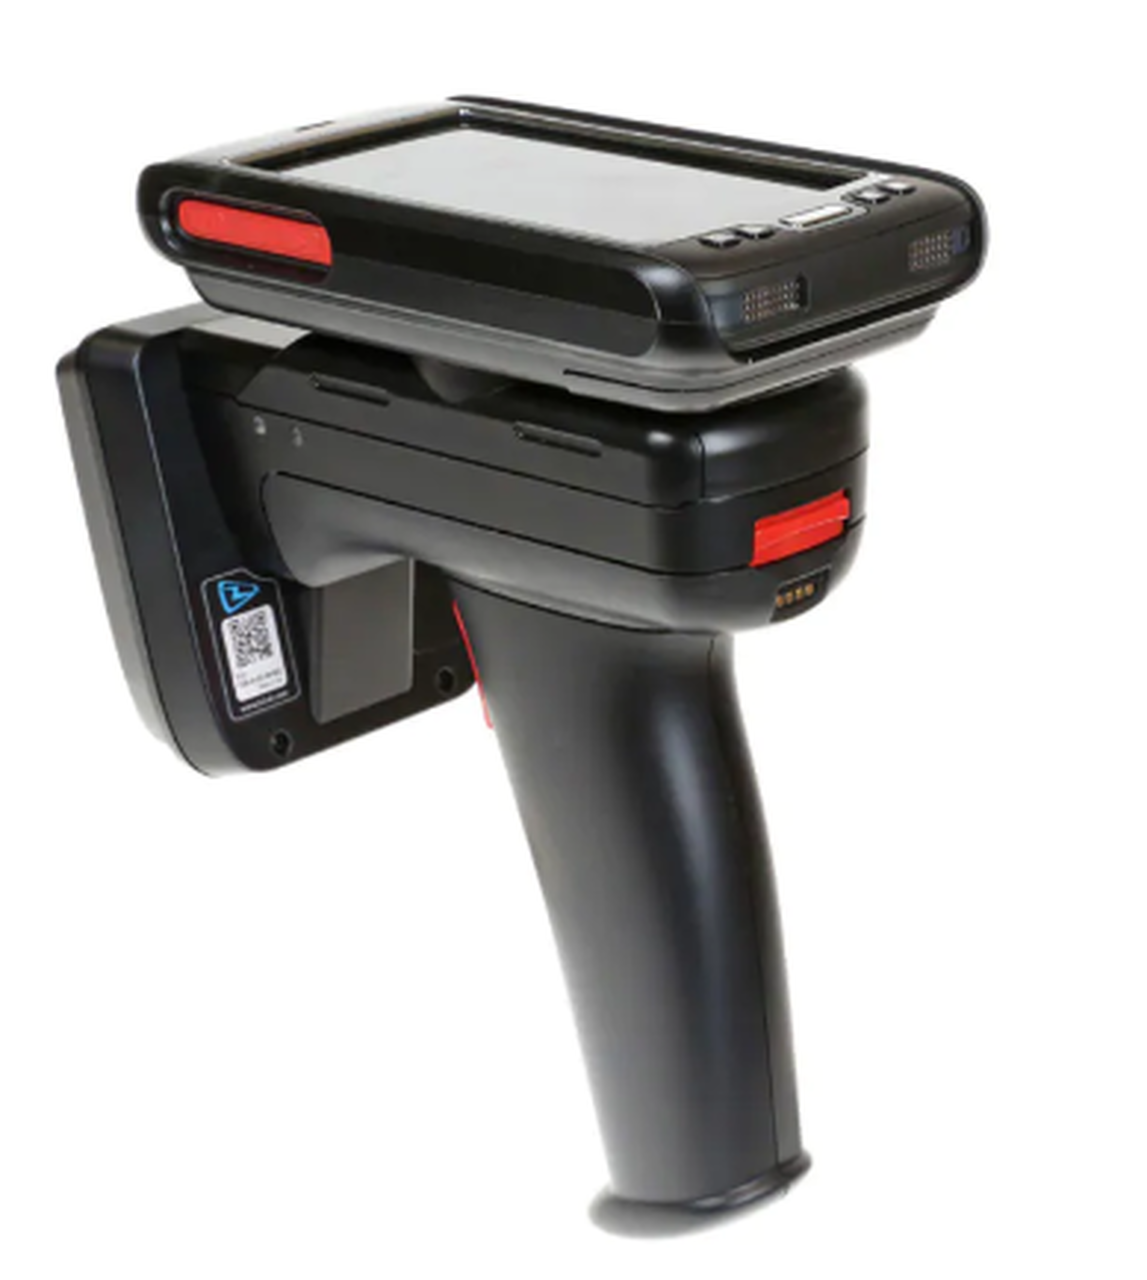 Honeywell IH21 Handheld RFID Reader